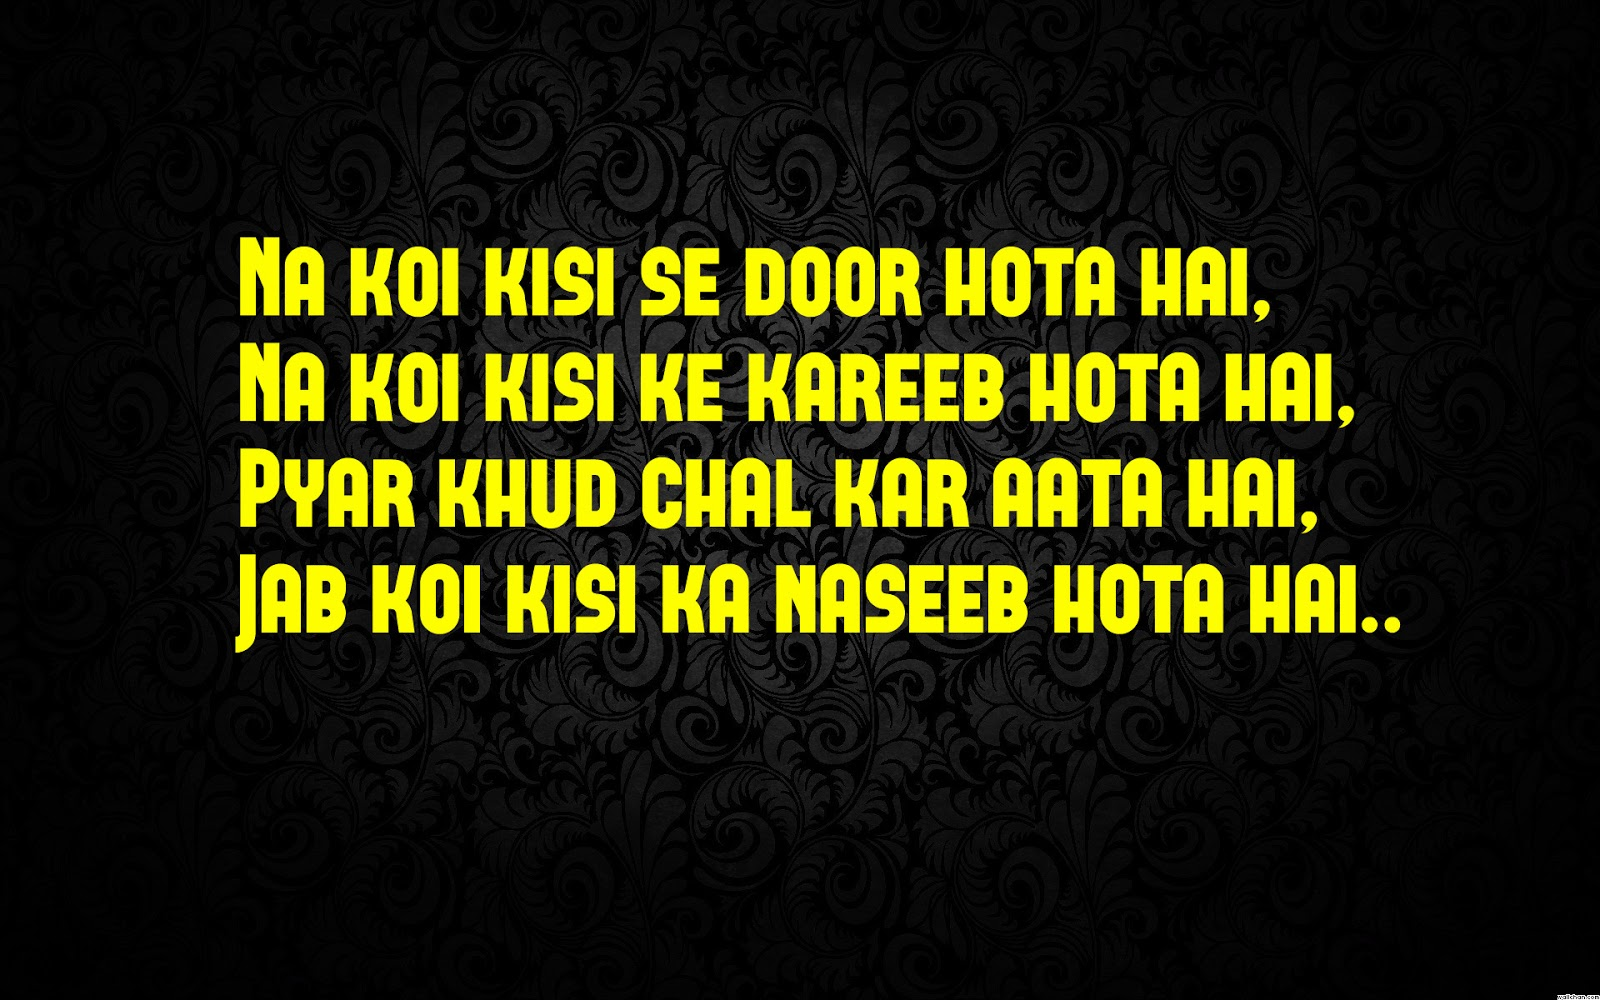 Wallpaper download jokes - Top30 Hindi Joke Shayari Dosti In English Love Romantic Image Sms Photos Pics Wallpapers